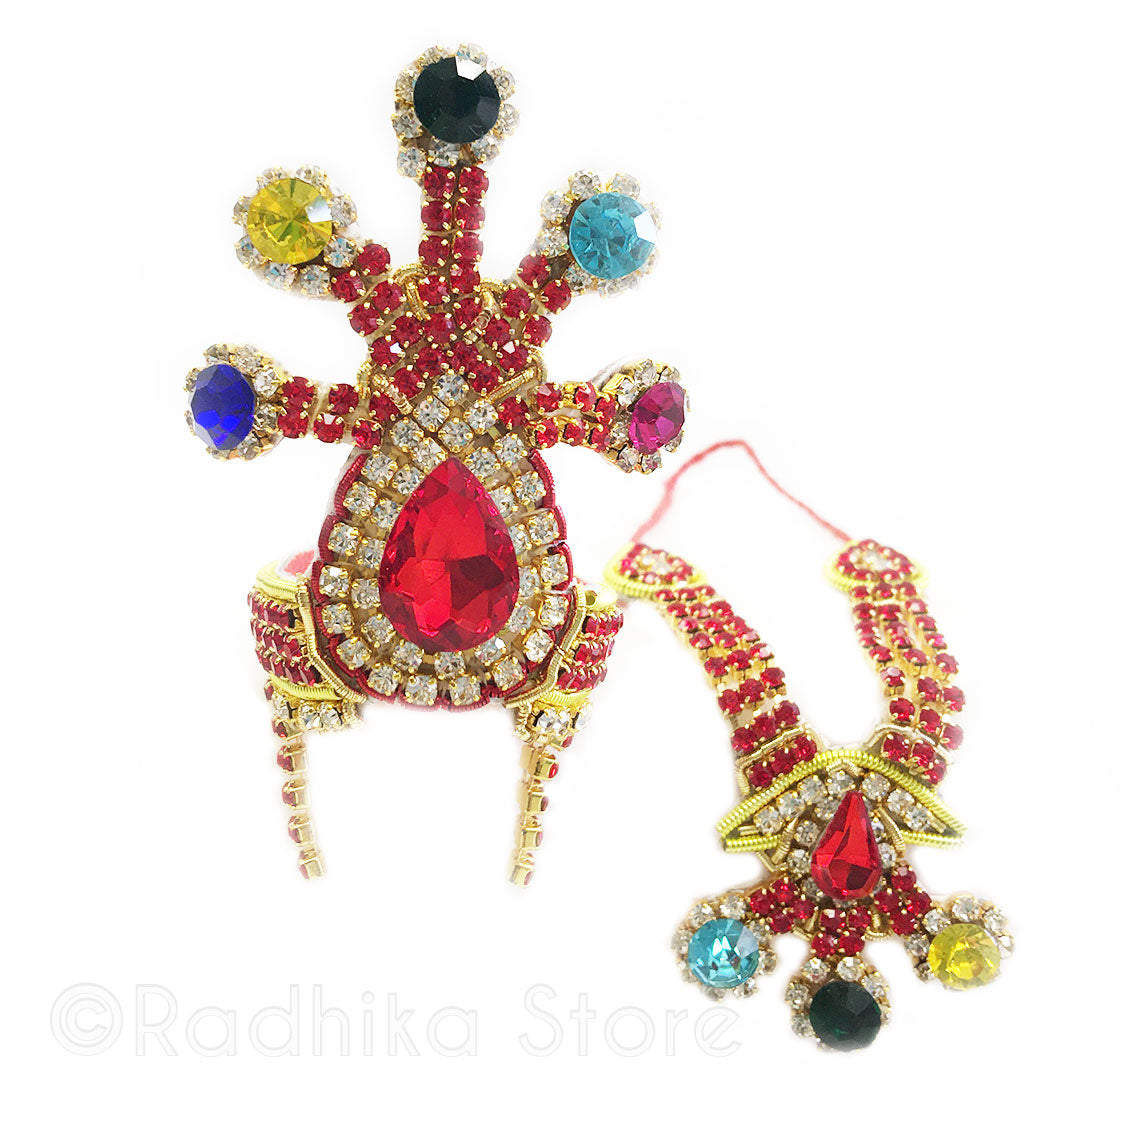 Cosmic Krishna - Deity Crown and Necklace Set -With Earrings - Red Multi Color